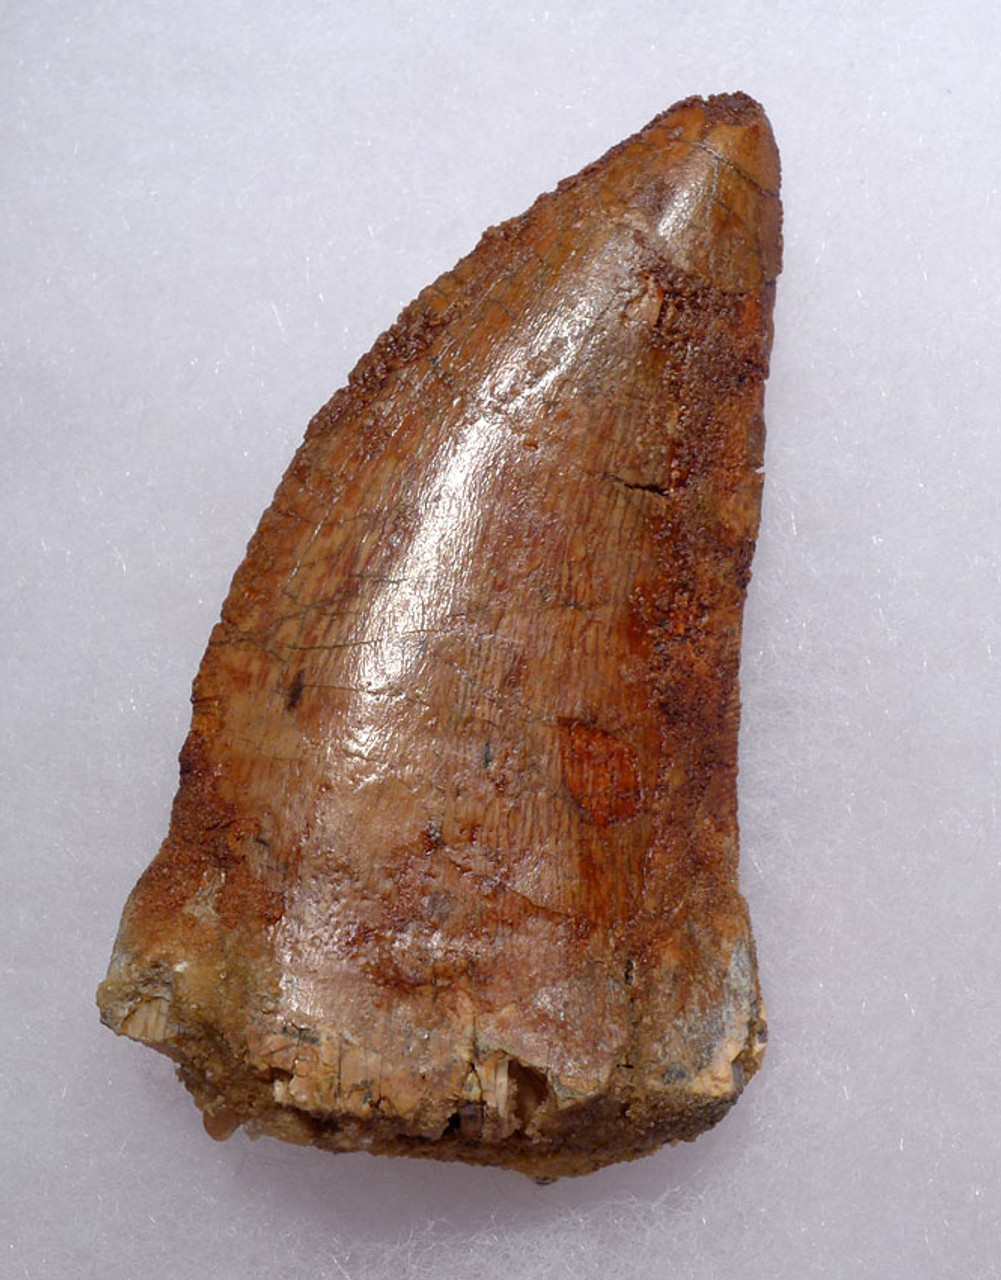 DT2-092 - LARGE 3 INCH FOSSIL CARCHARODONTOSAURUS TOOTH FROM THE LARGEST MEAT-EATING DINOSAUR